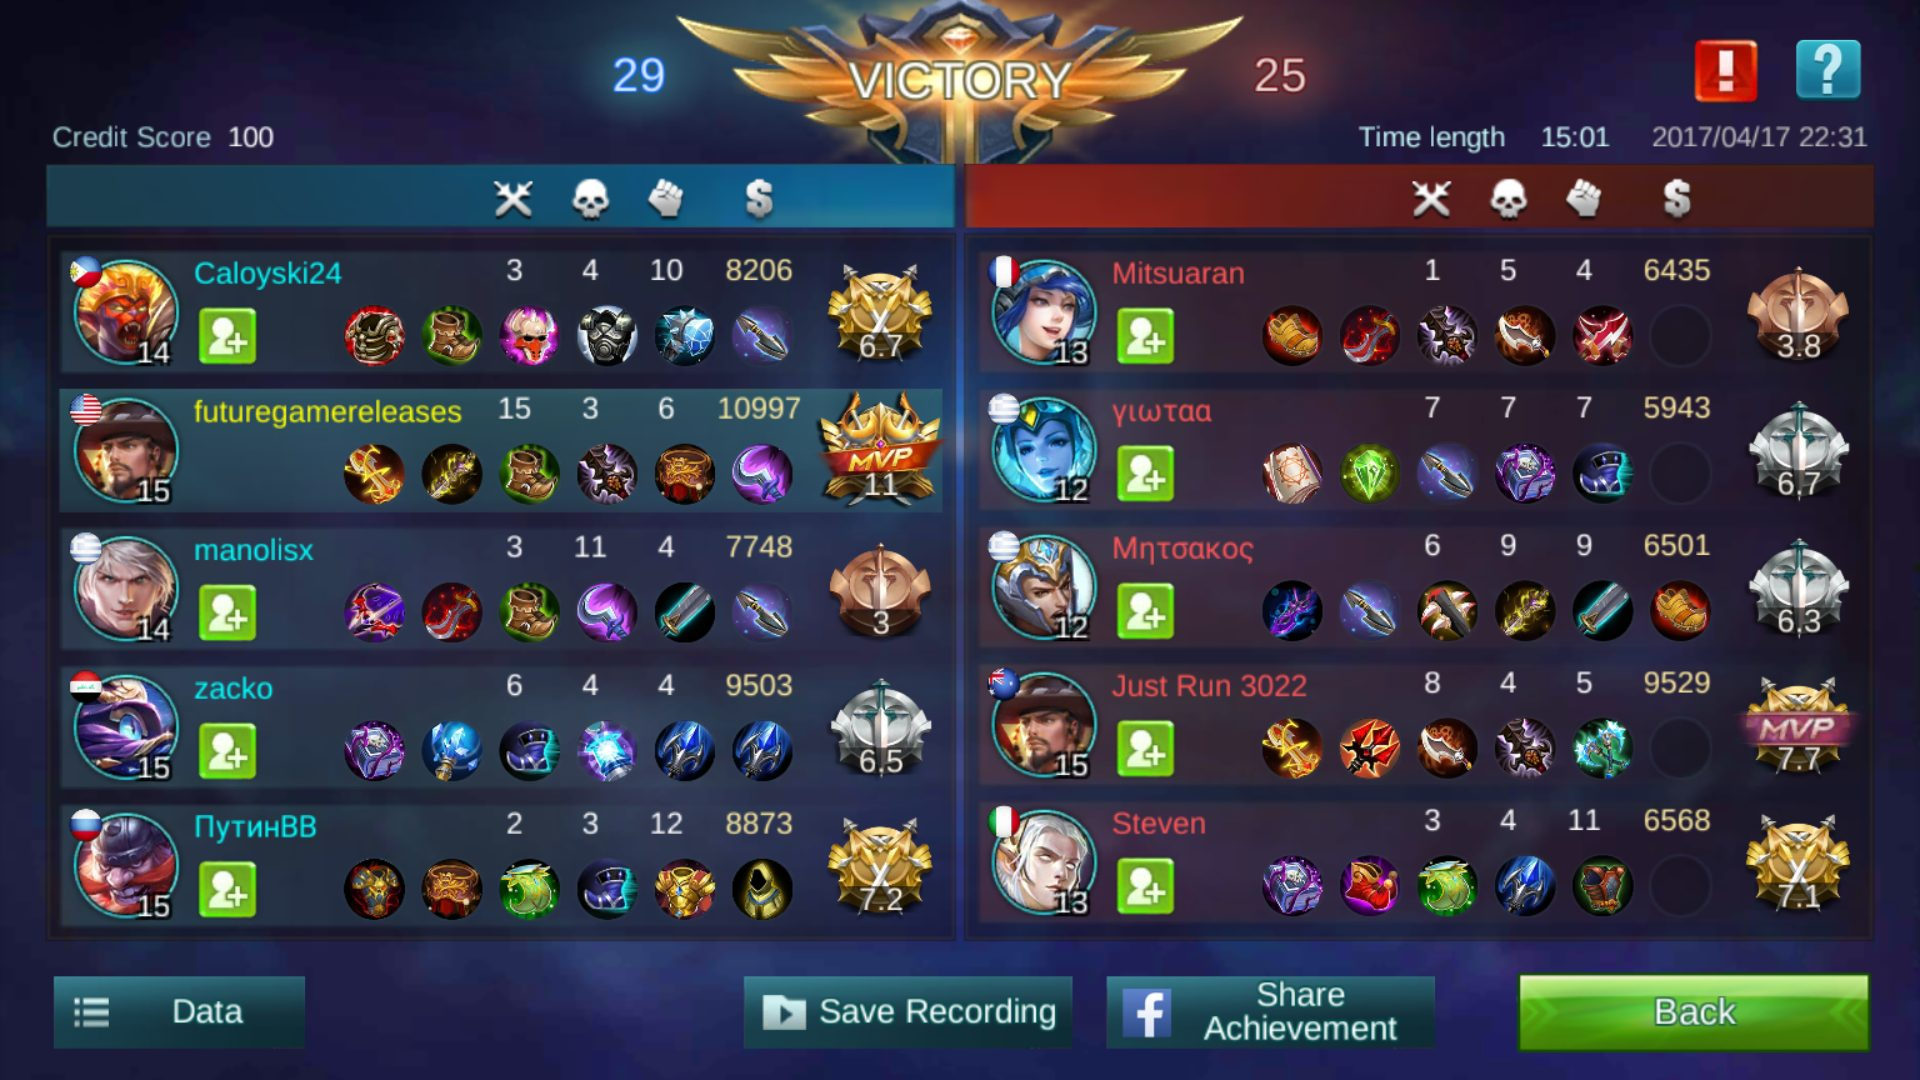 Yi Sun shin Build Guide And How To Use Skills Guide In Mobile Legends